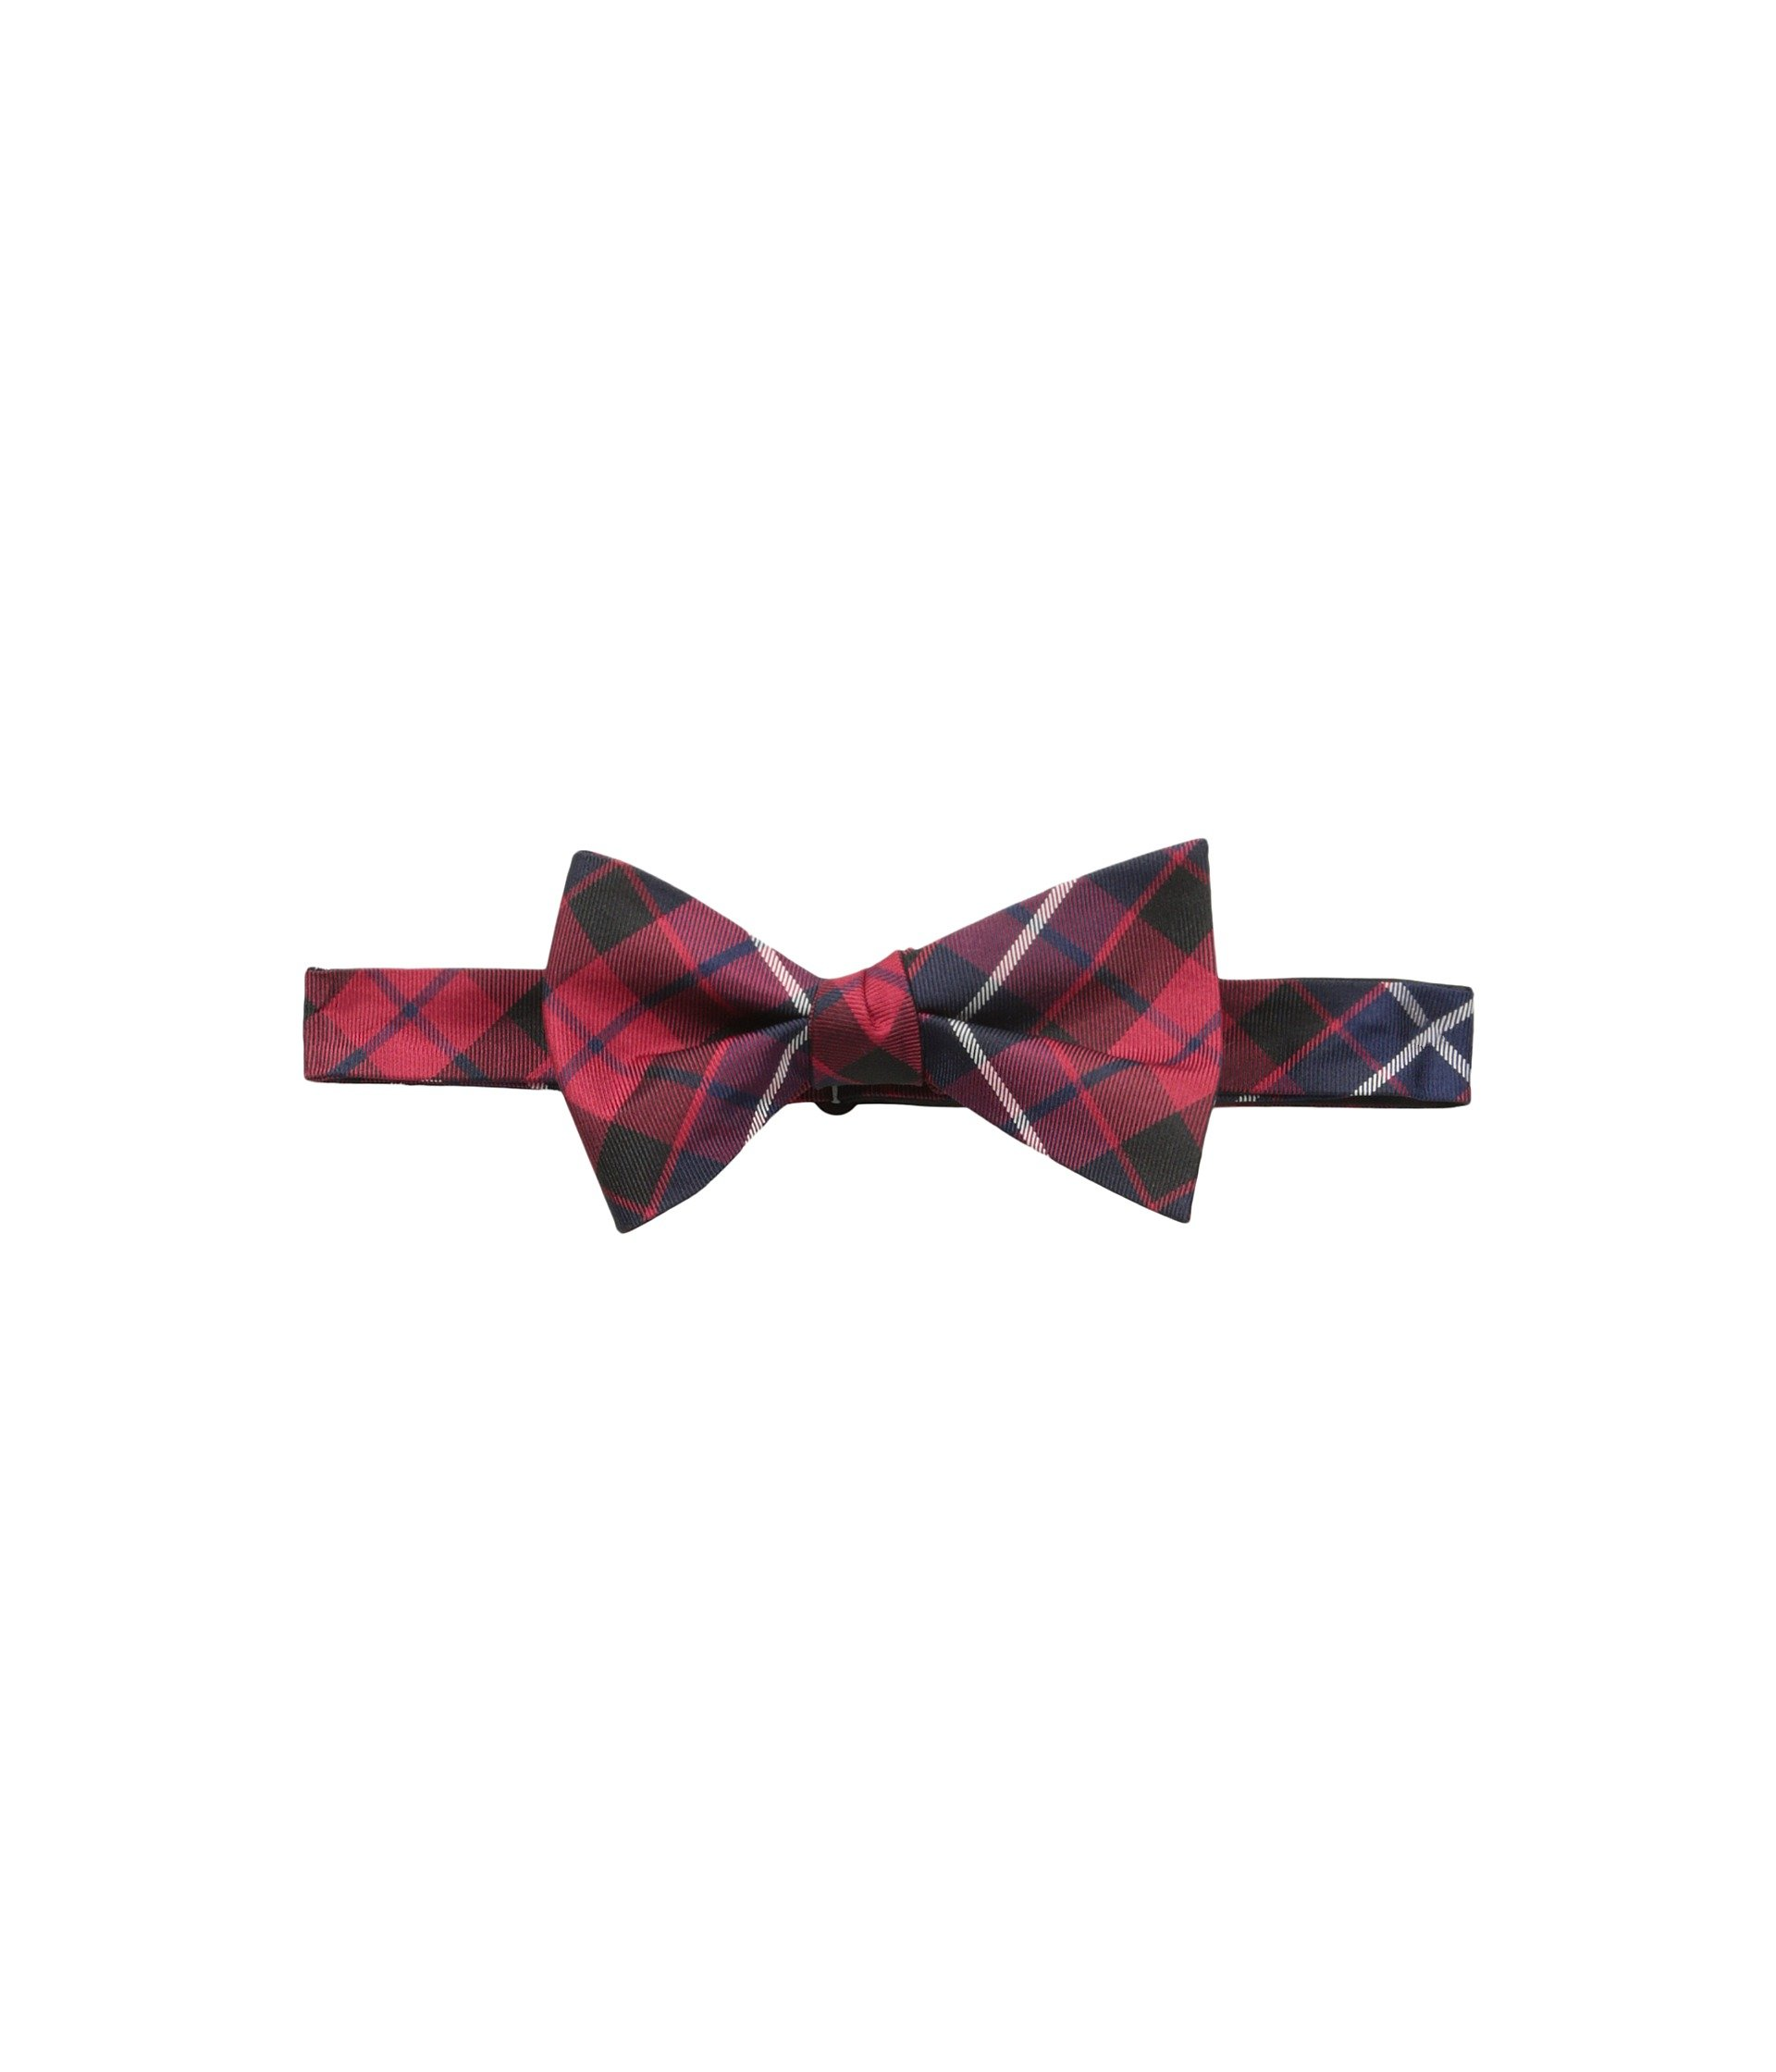 Corbata para Hombre Tommy Hilfiger Large Plaid Self-Tie Bow Tie  + Tommy Hilfiger en VeoyCompro.net